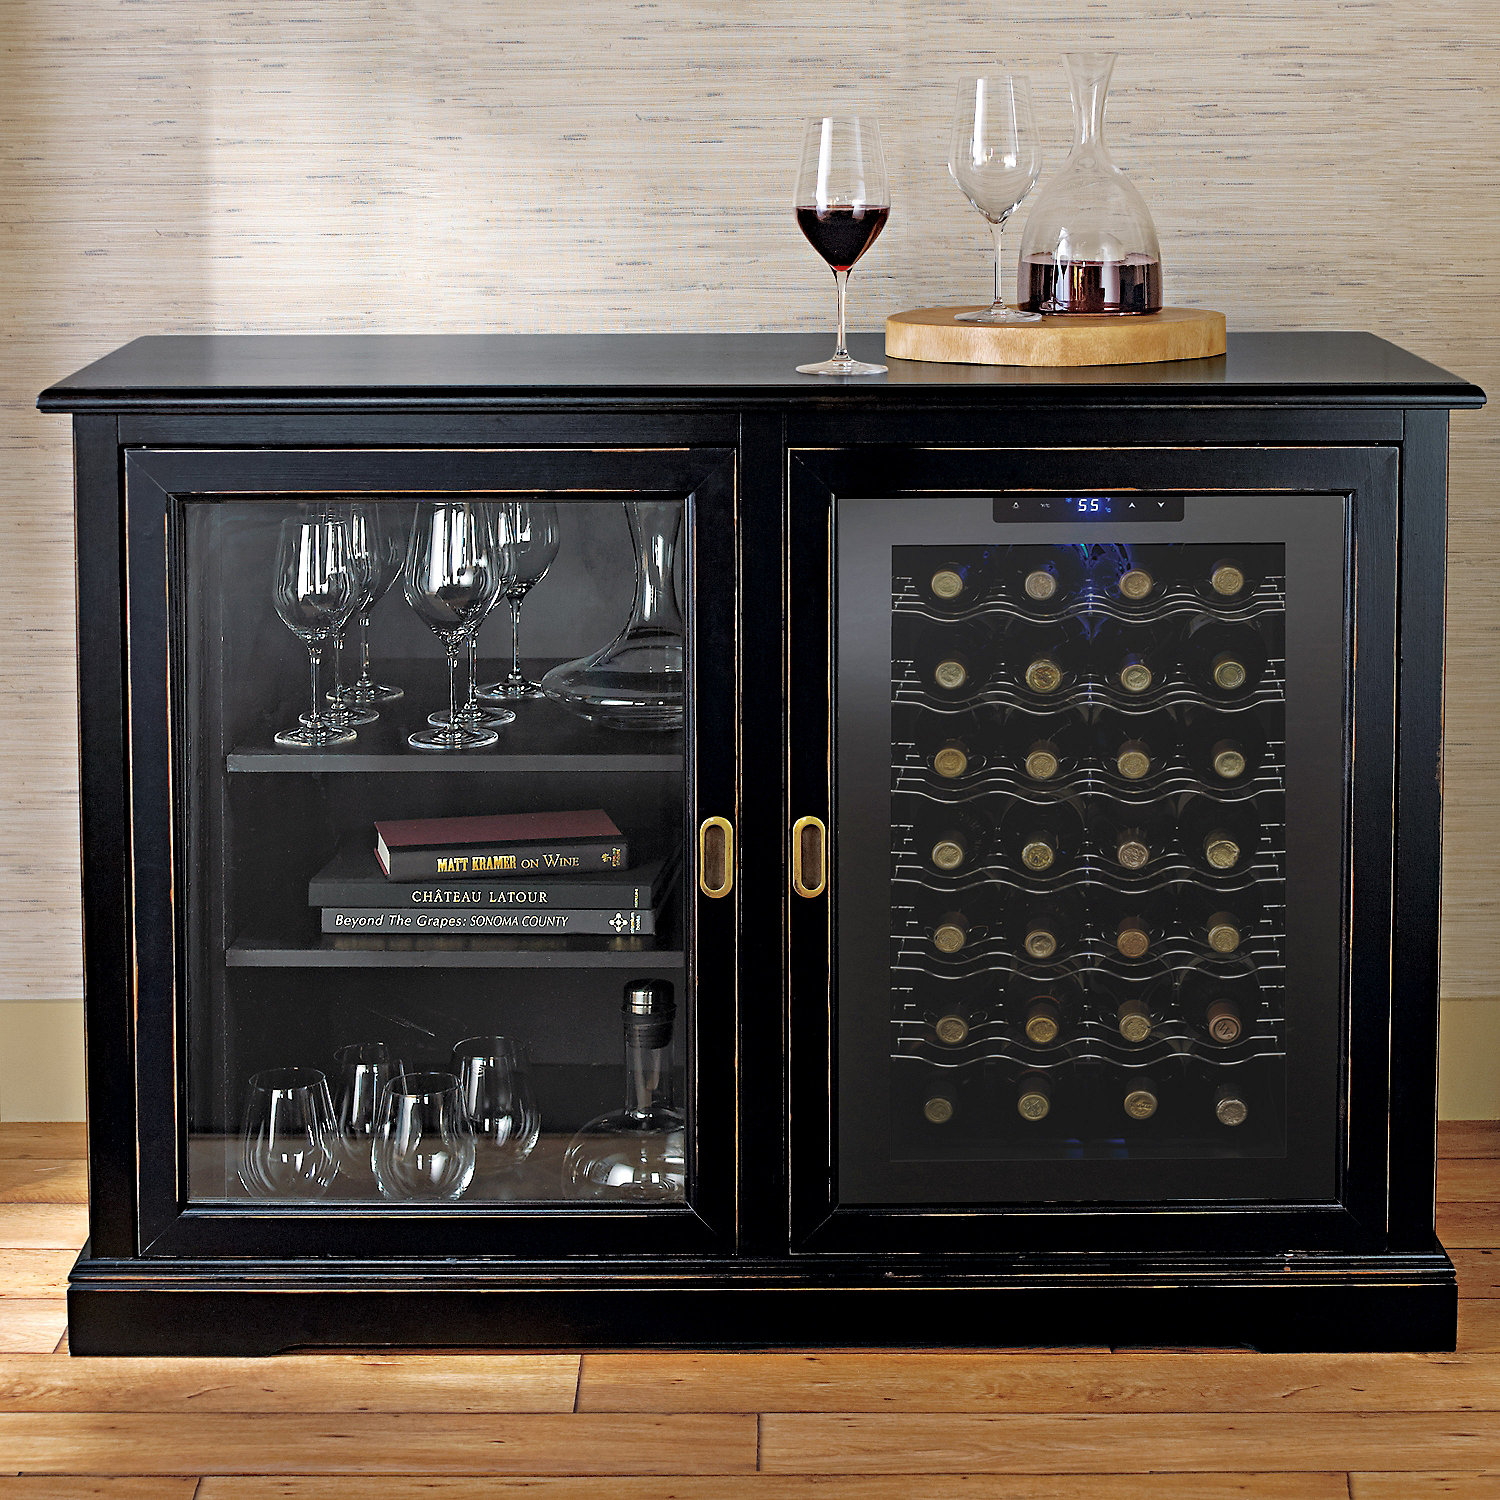 refurbished costco counter zone in custom undercounter cooler drink under freestanding decor builtin vinotemp built most troubleshooting fridge wine made international cabinet refrigerators dual home parts cellar refrigerated popular furniture ideas